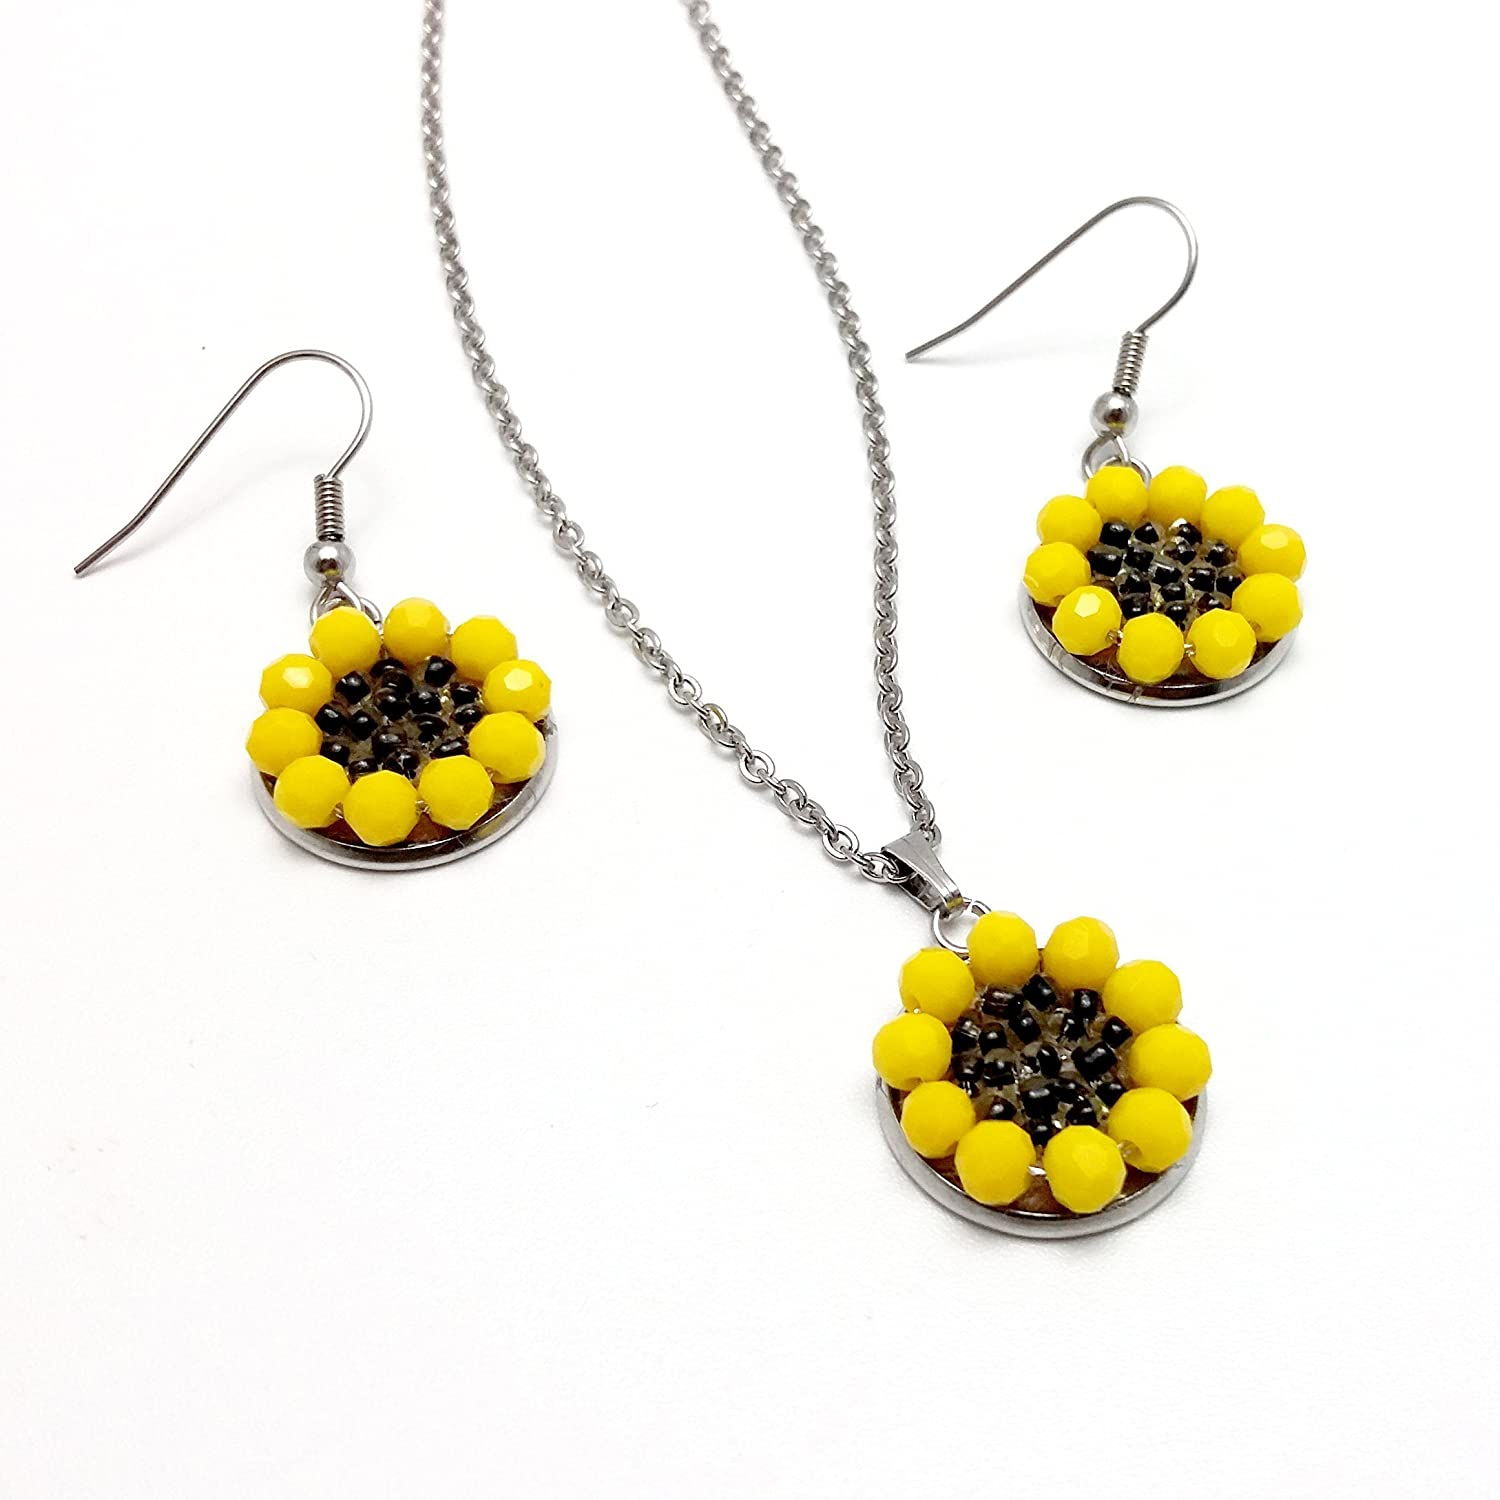 Sunflower Jewelry Sets, Stainless Steel Jewelry Sets, Crystals Jewelry, Handmade Jewelry, Elegant Women Pendant, Gift for Women, Floral Design